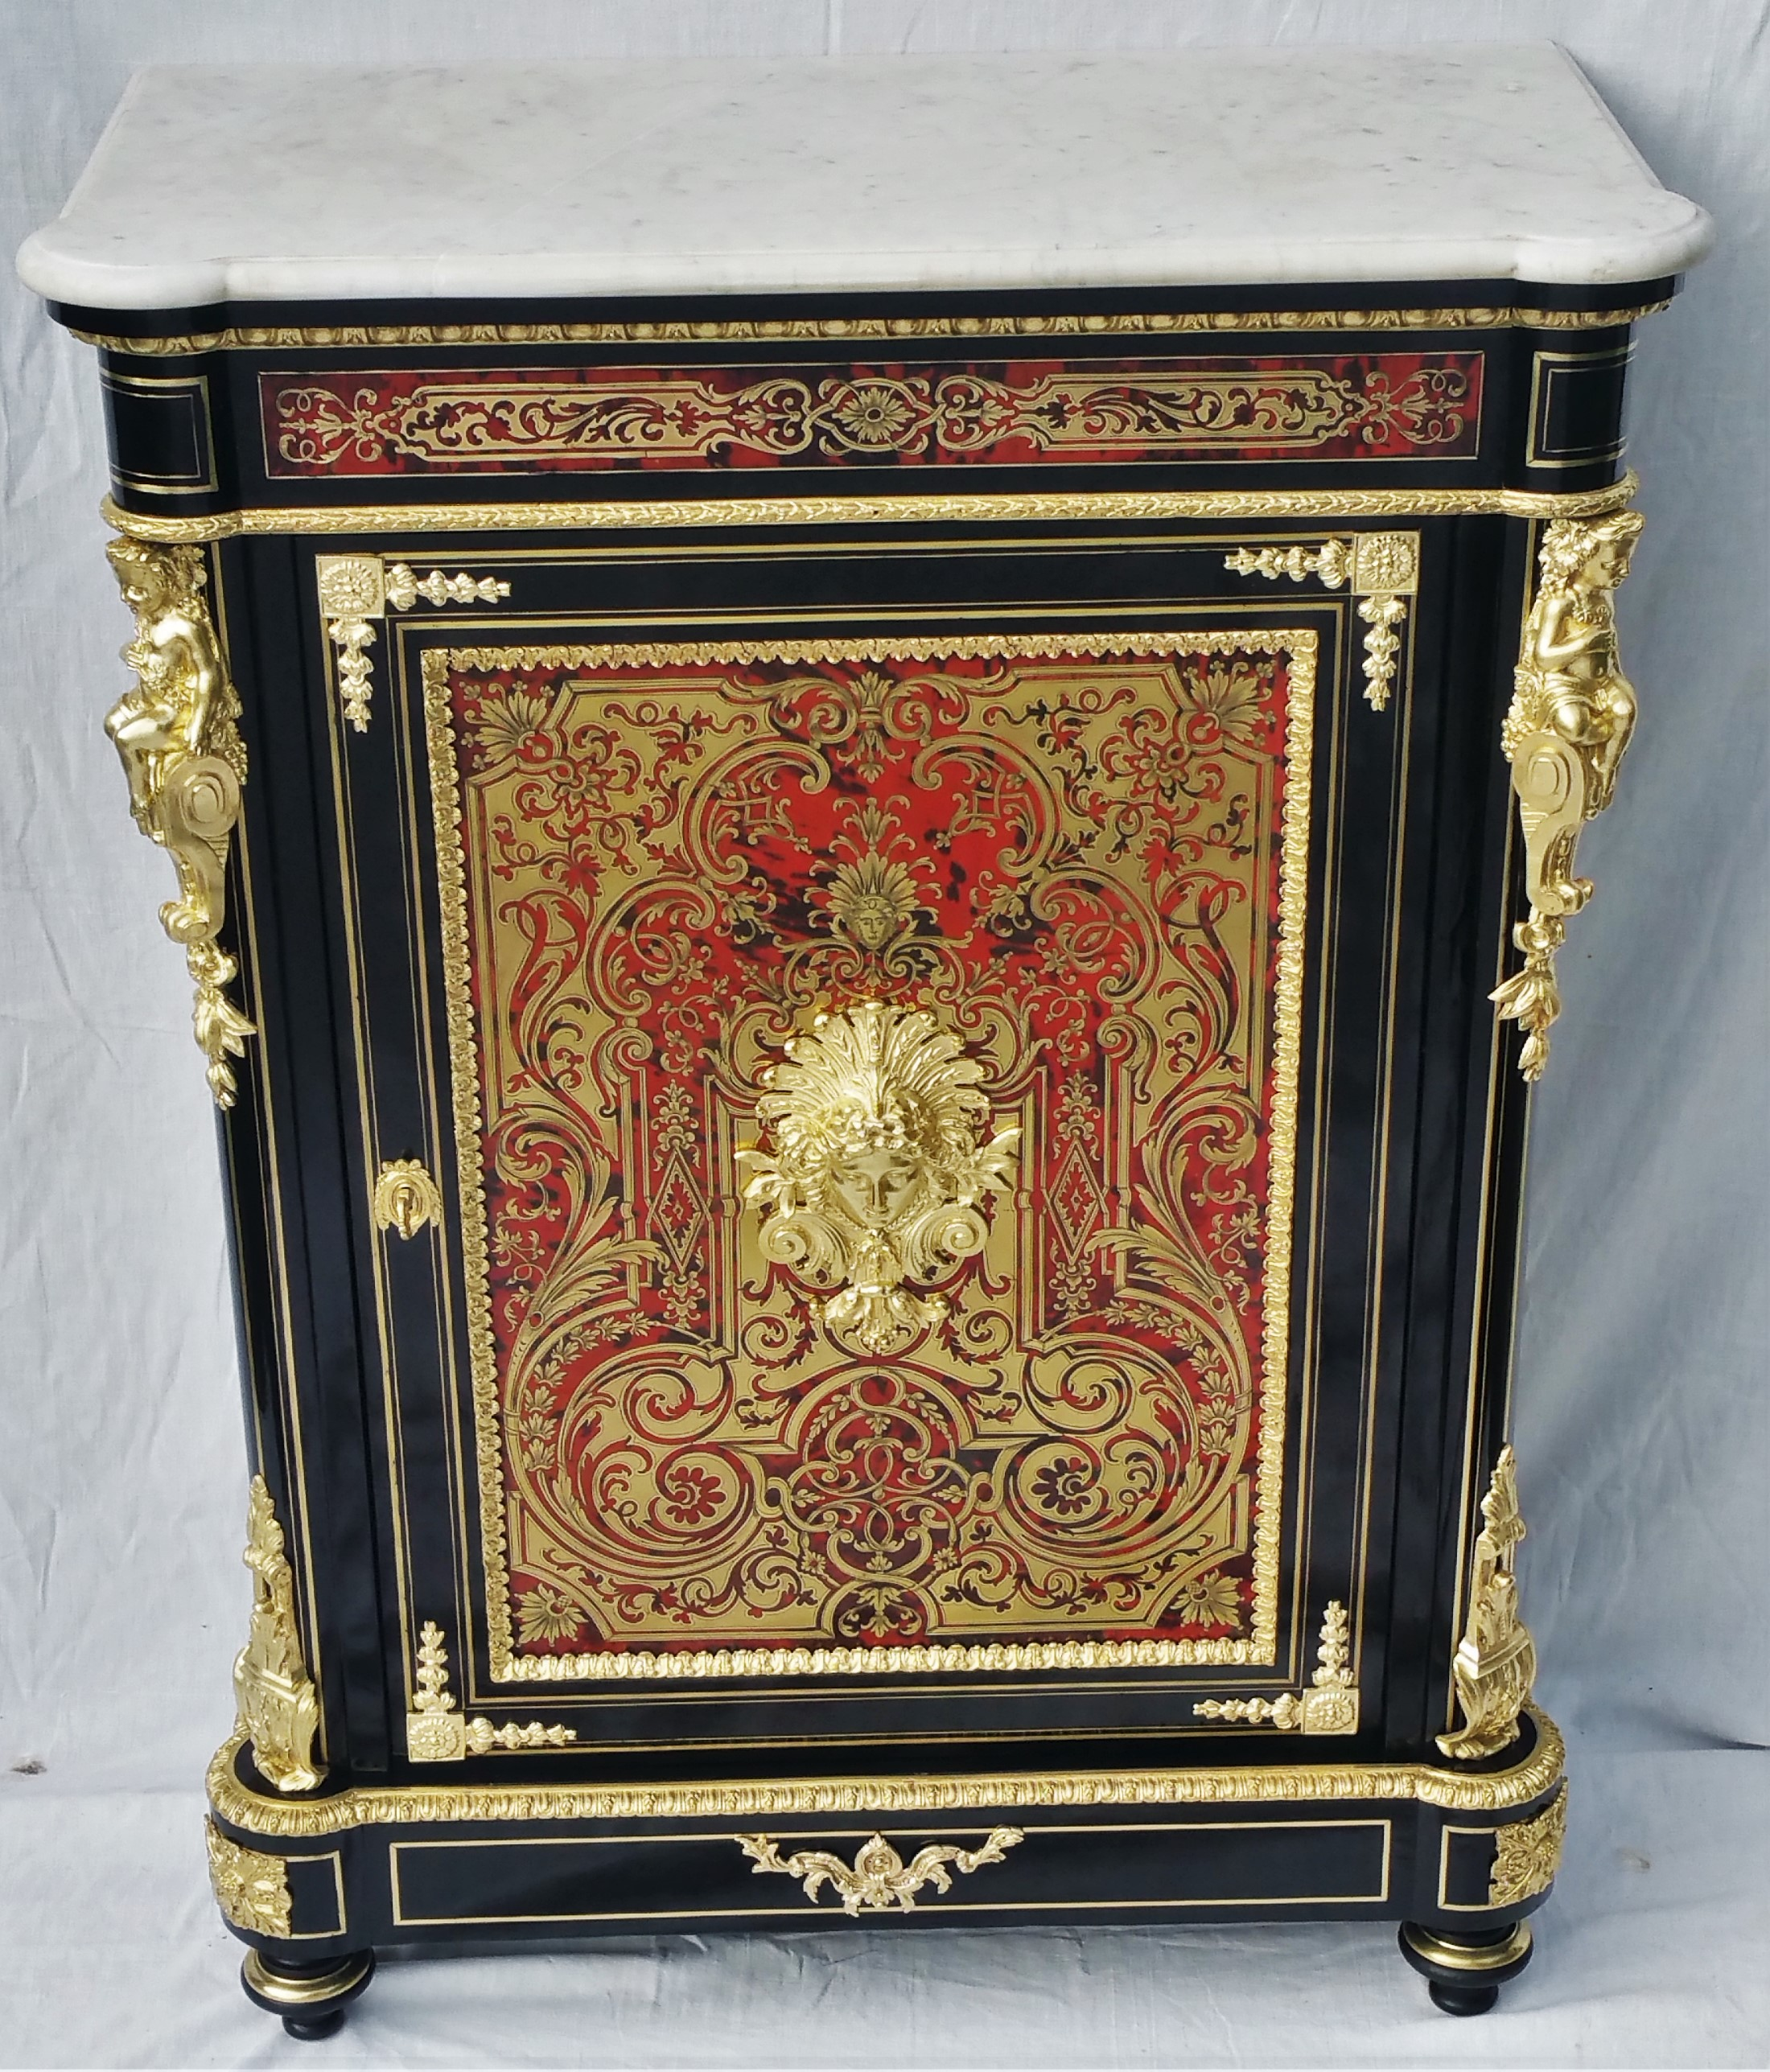 Meuble d'appui marqueterie Boulle Napoleon III